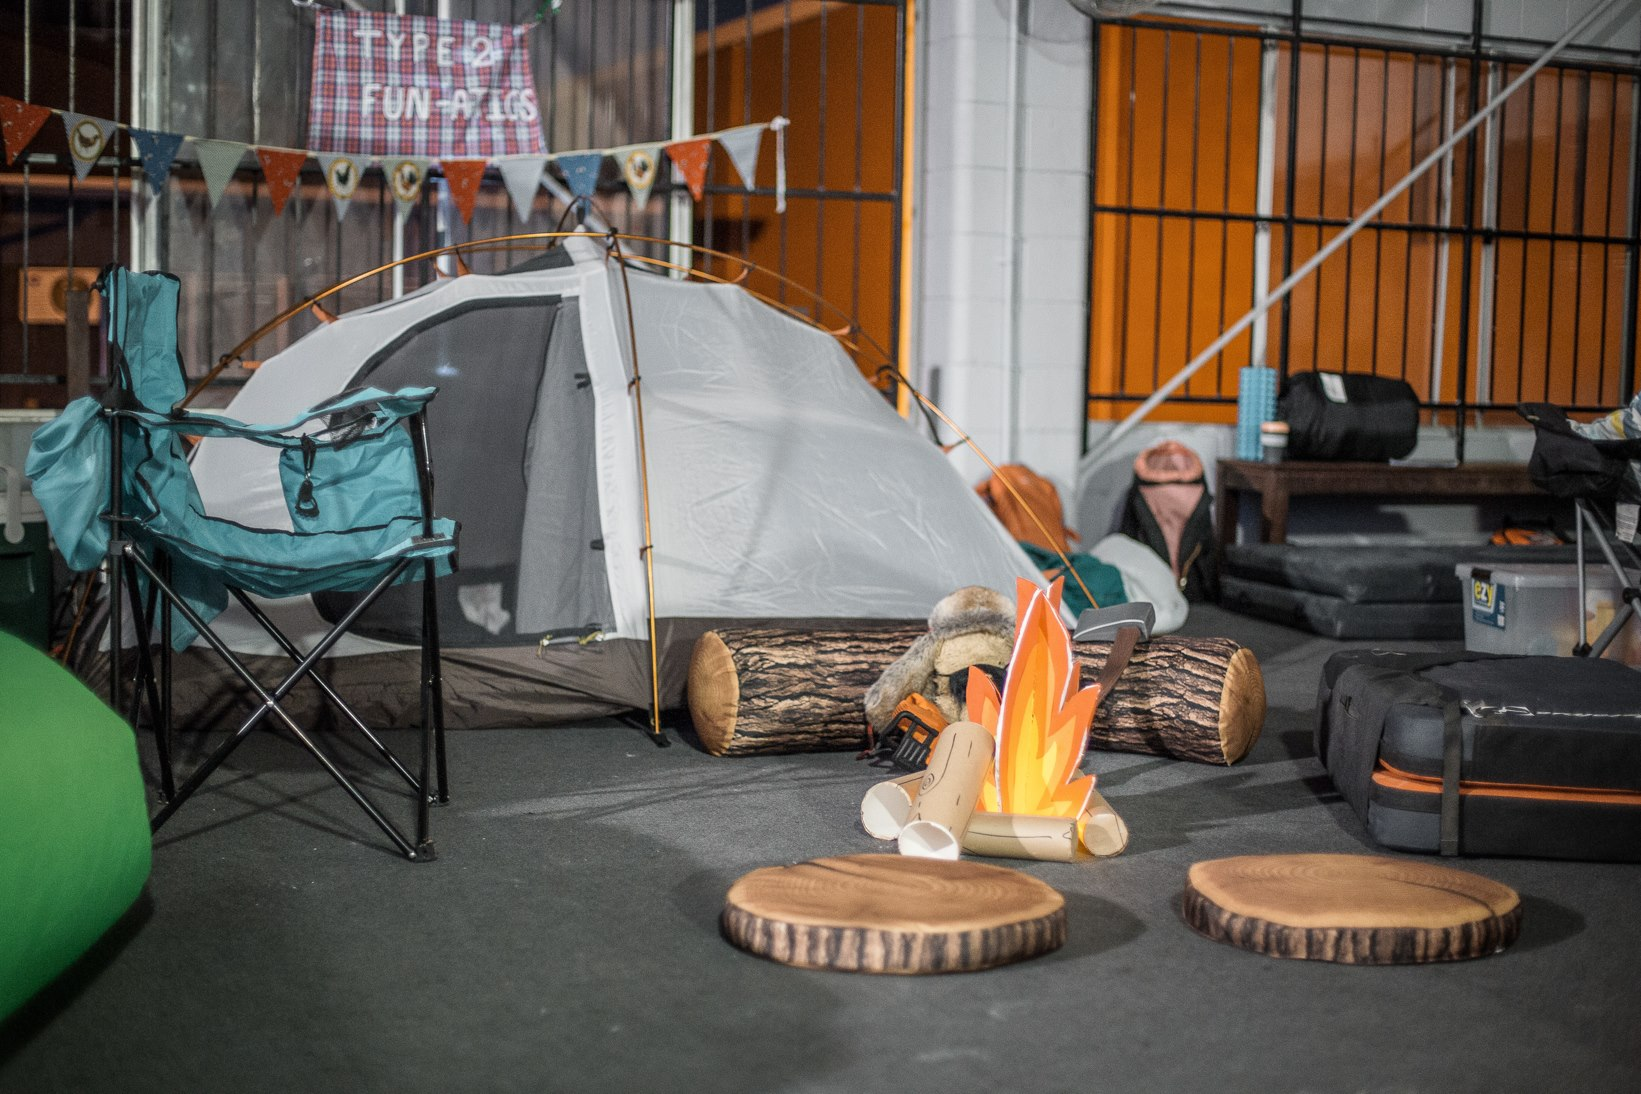 People set up some elaborate 'base camps' to help endure the suffering.